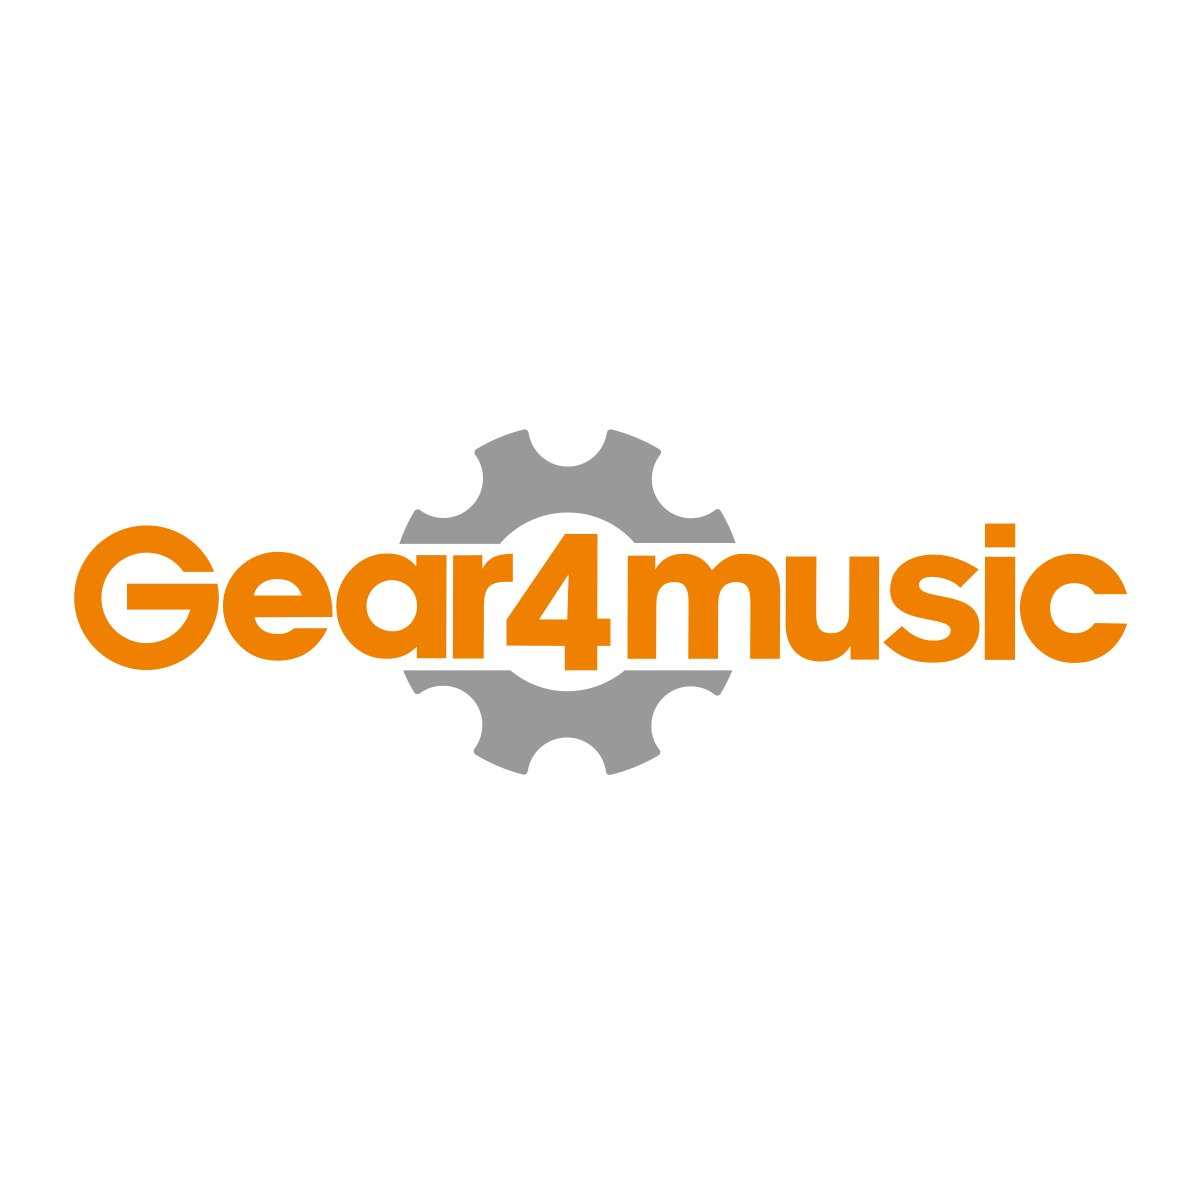 MK-6000 Keyboard with USB MIDI by Gear4music - Complete Pack